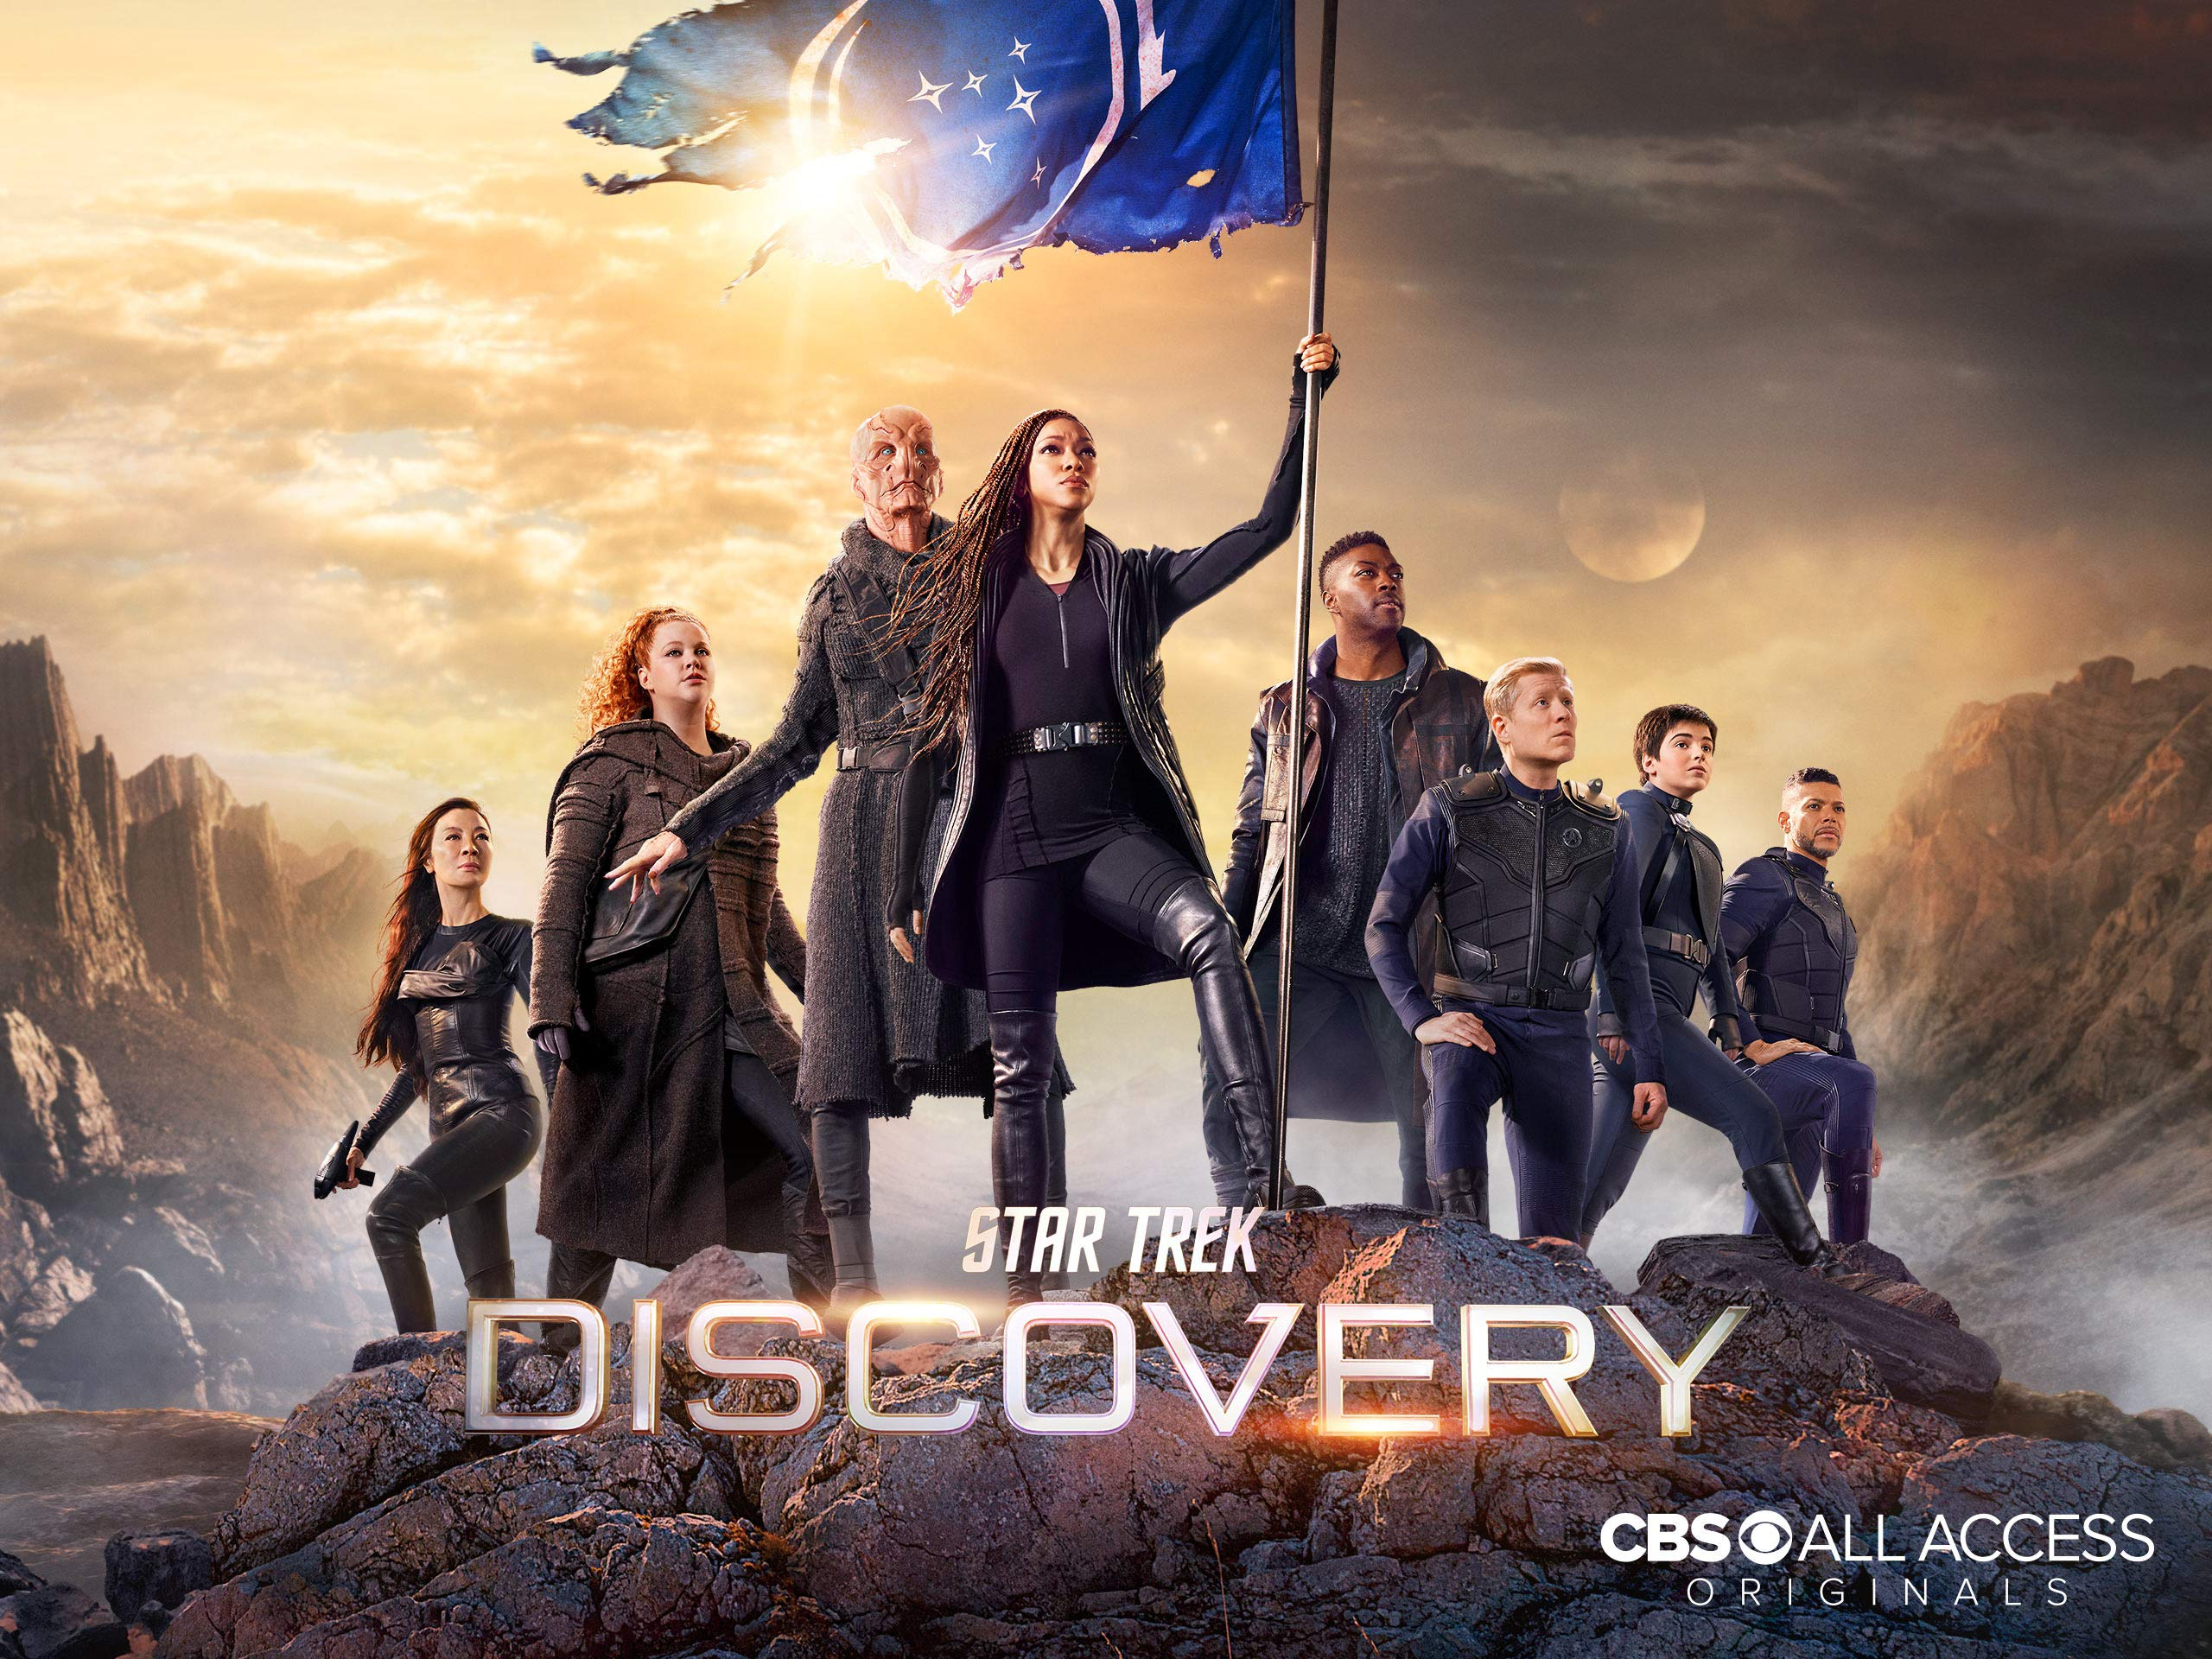 Star Trek: Discovery Season 2 Episode 12 Subtitle (English Srt) Download